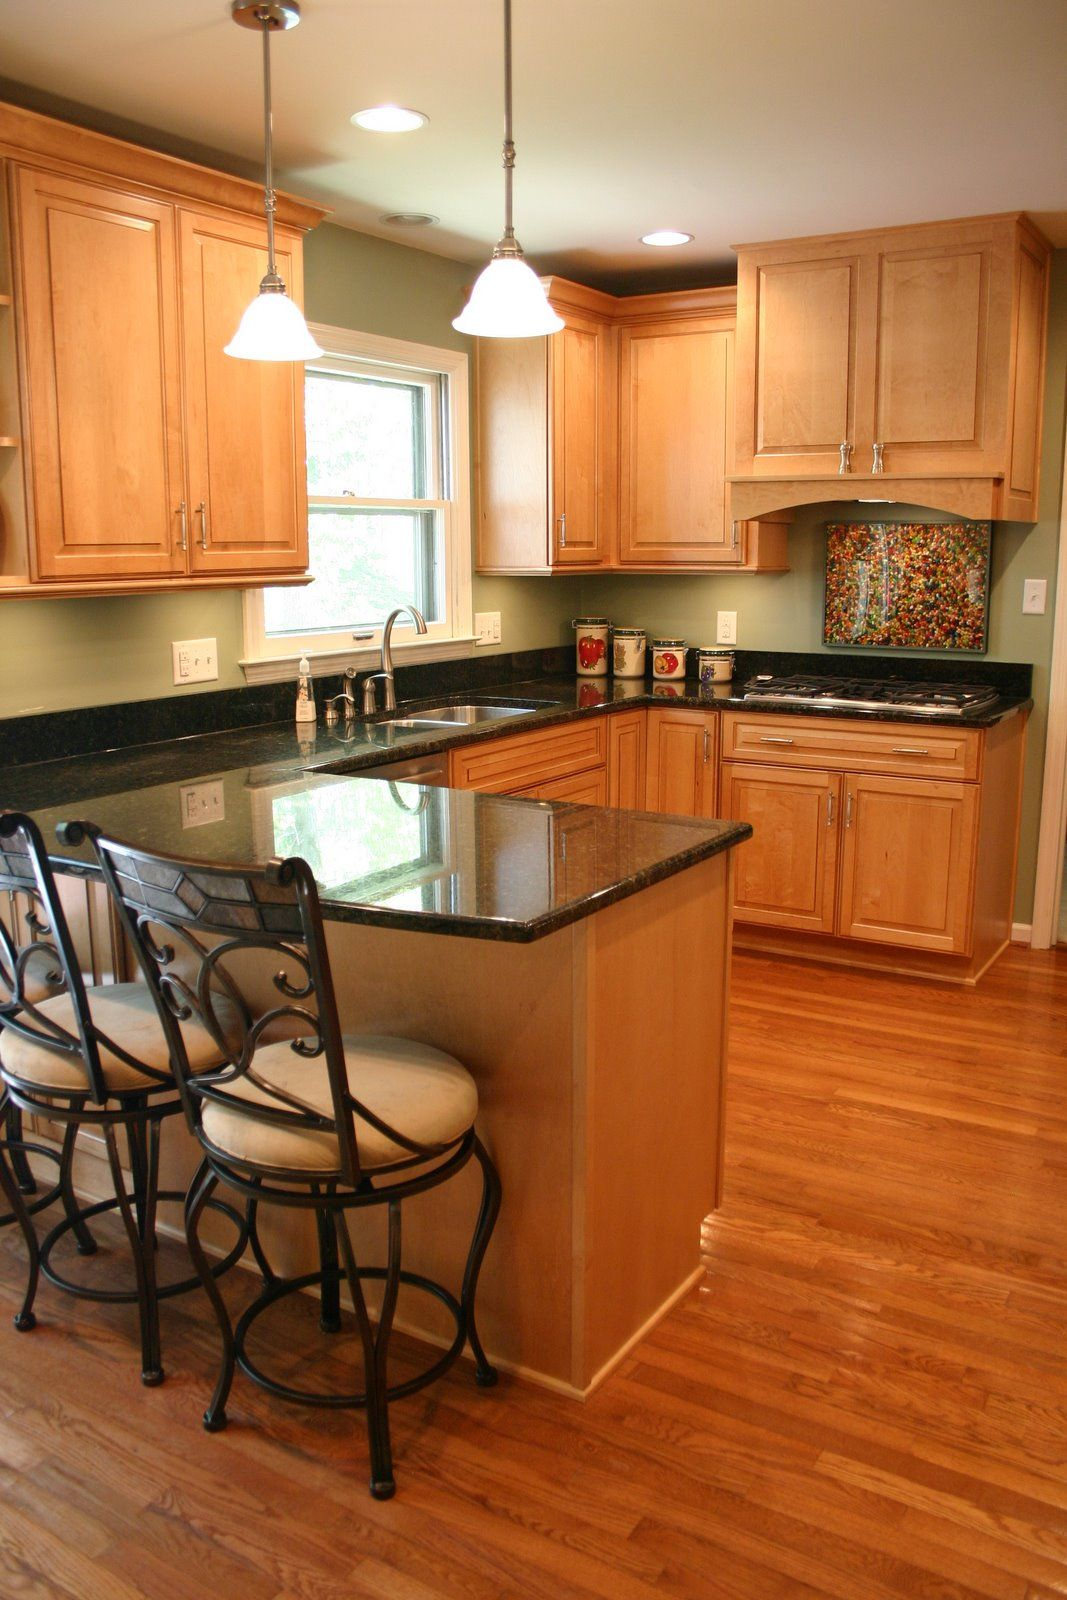 Color Scheme I Totally Love For A Kitchen Green Kitchen Walls